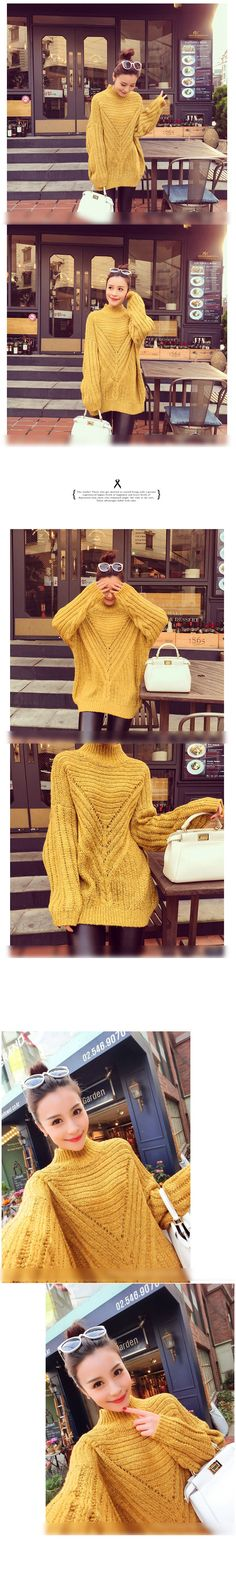 Buy Sienne Mock-Neck Chunky Knit Long Sweater at YesStyle.com! Quality products at remarkable prices. FREE Worldwide Shipping available!